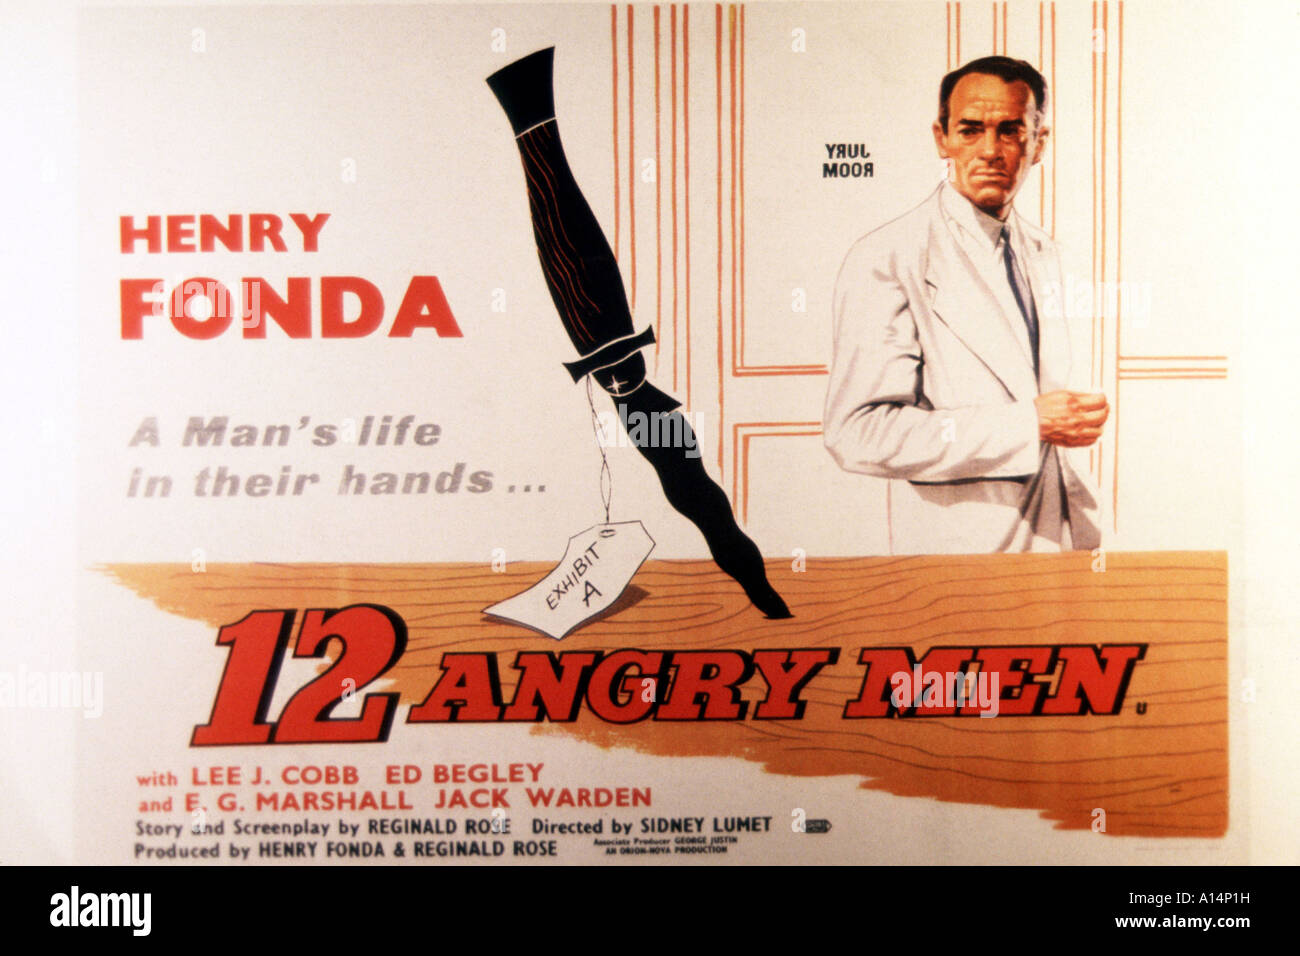 12 ANGRY MEN Movie PHOTO Print POSTER Glossy Textless Sidney Lumet 1957 002